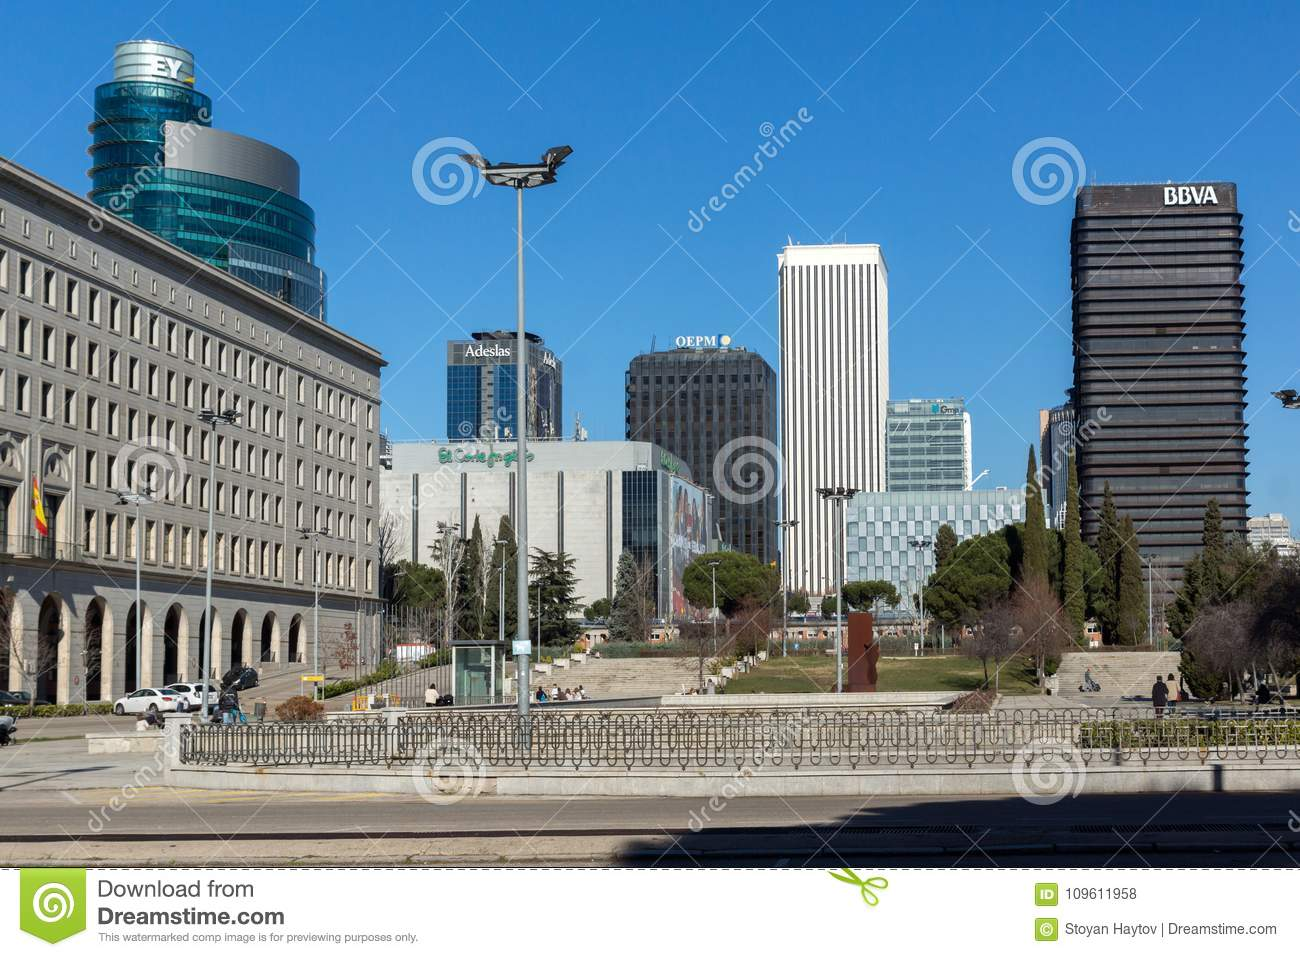 madrid spain history and culture